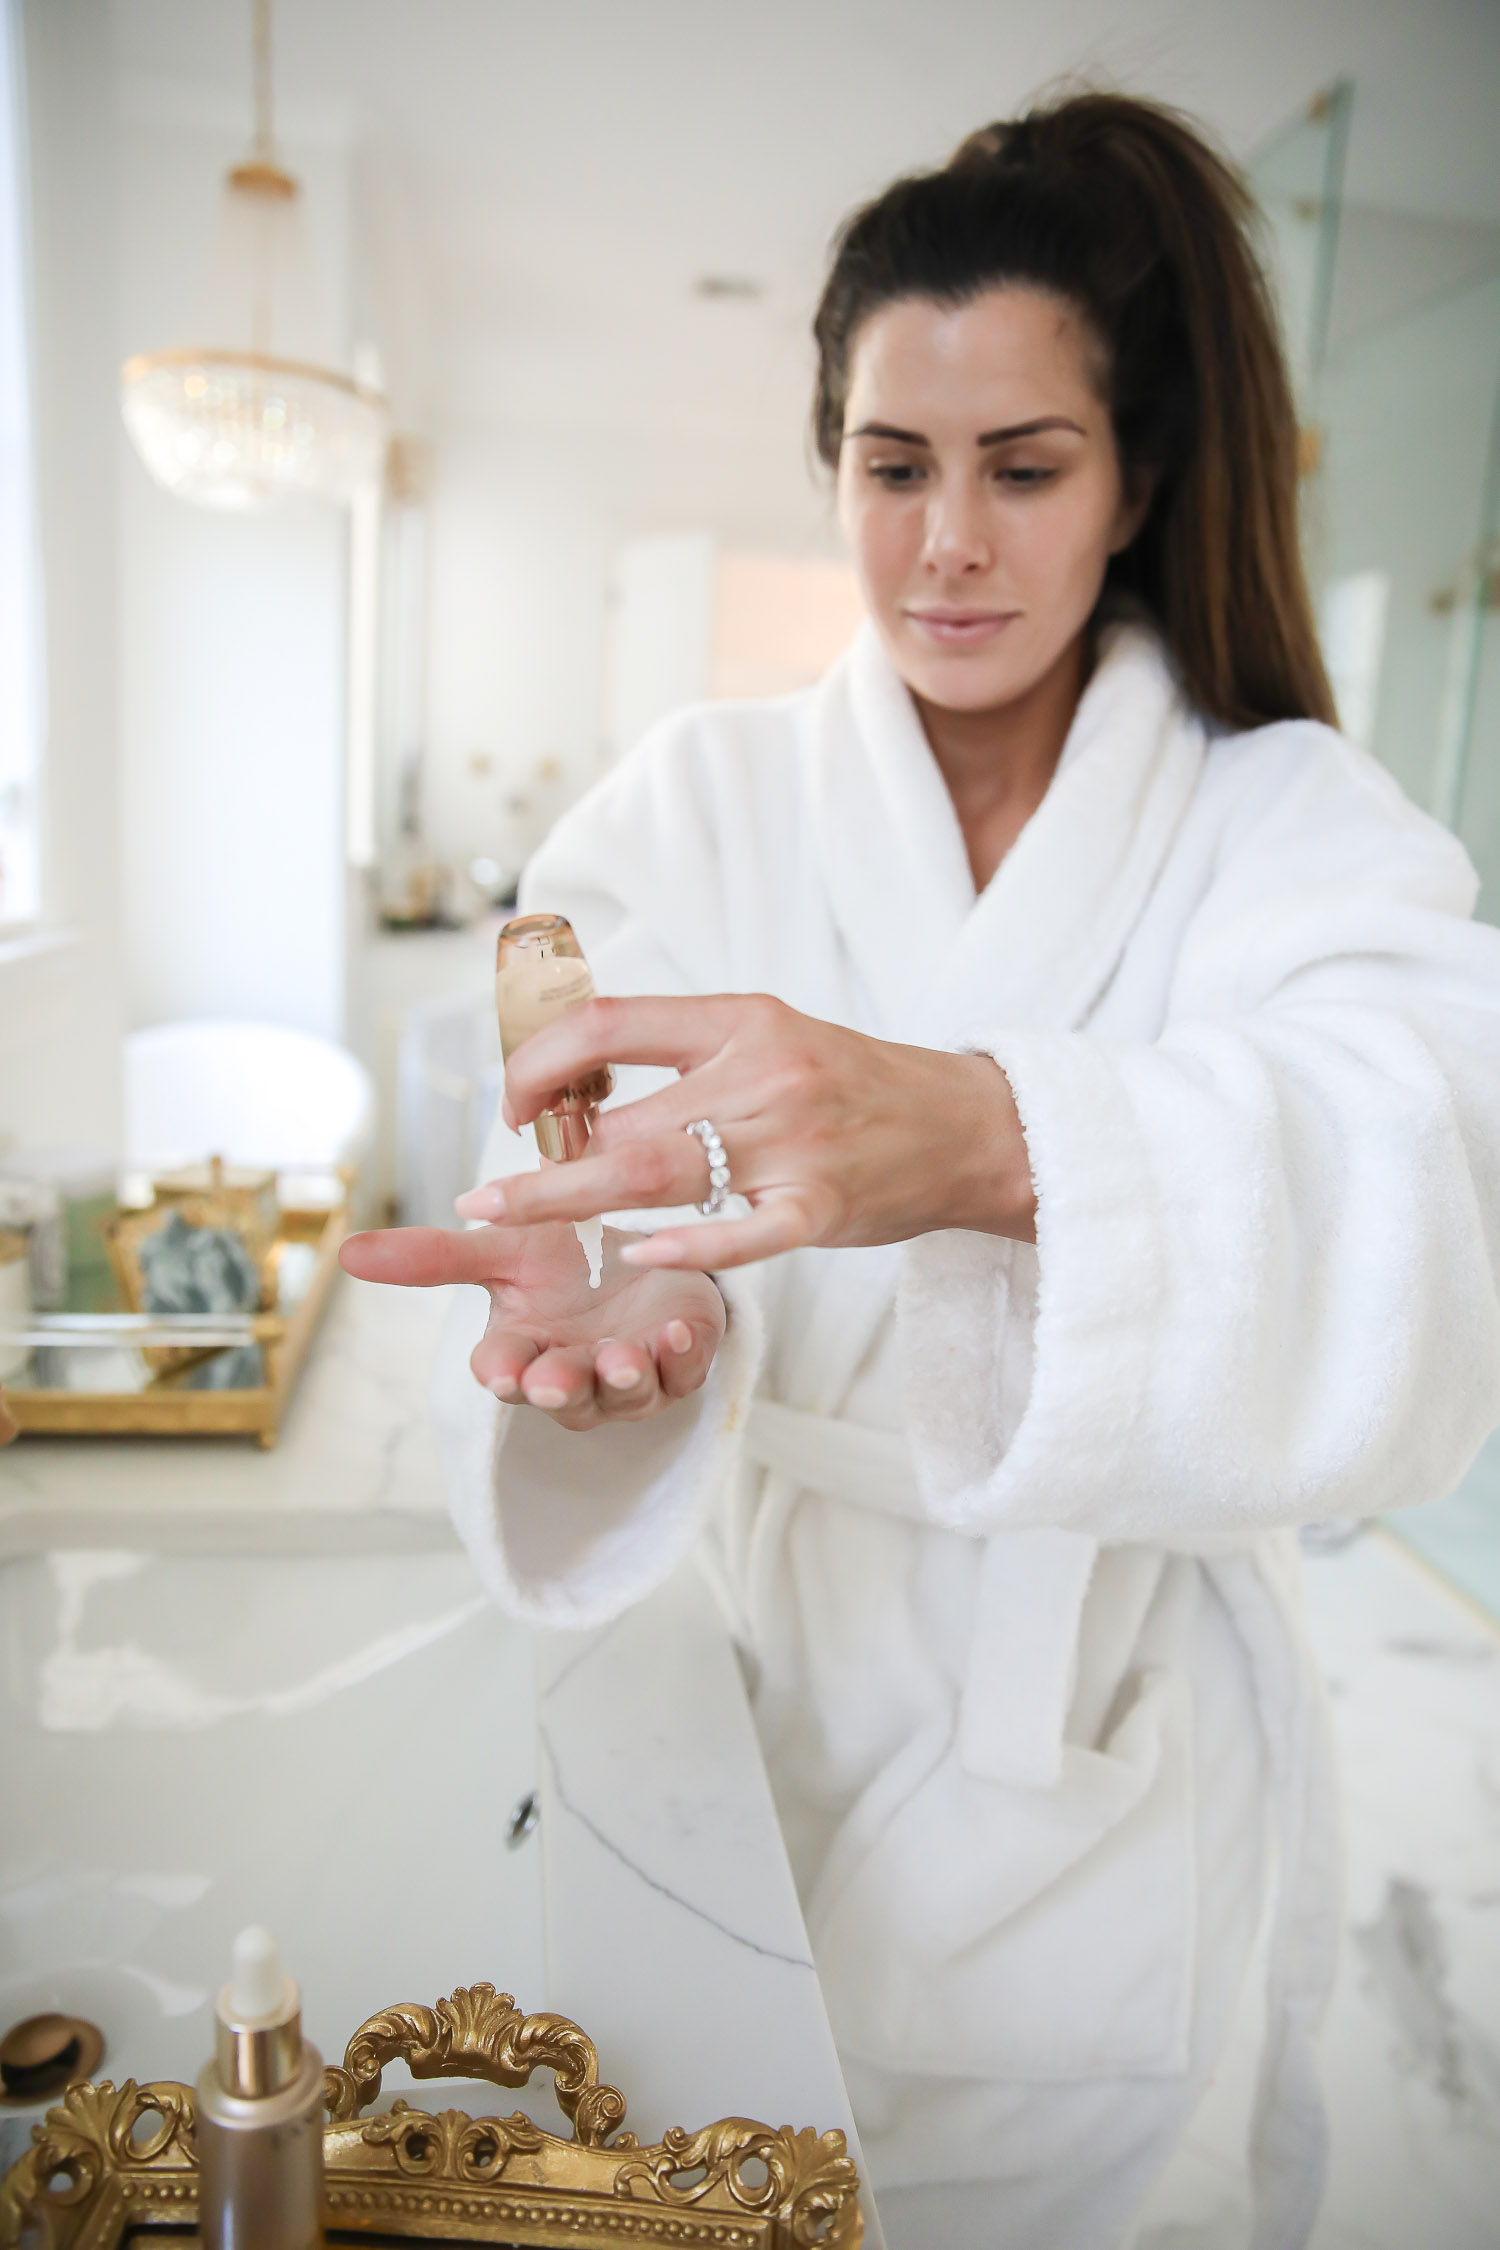 Lancome Skincare by popular US beauty blog, The Sweetest Thing: image of a woman using Lancome Absolue skincare products.